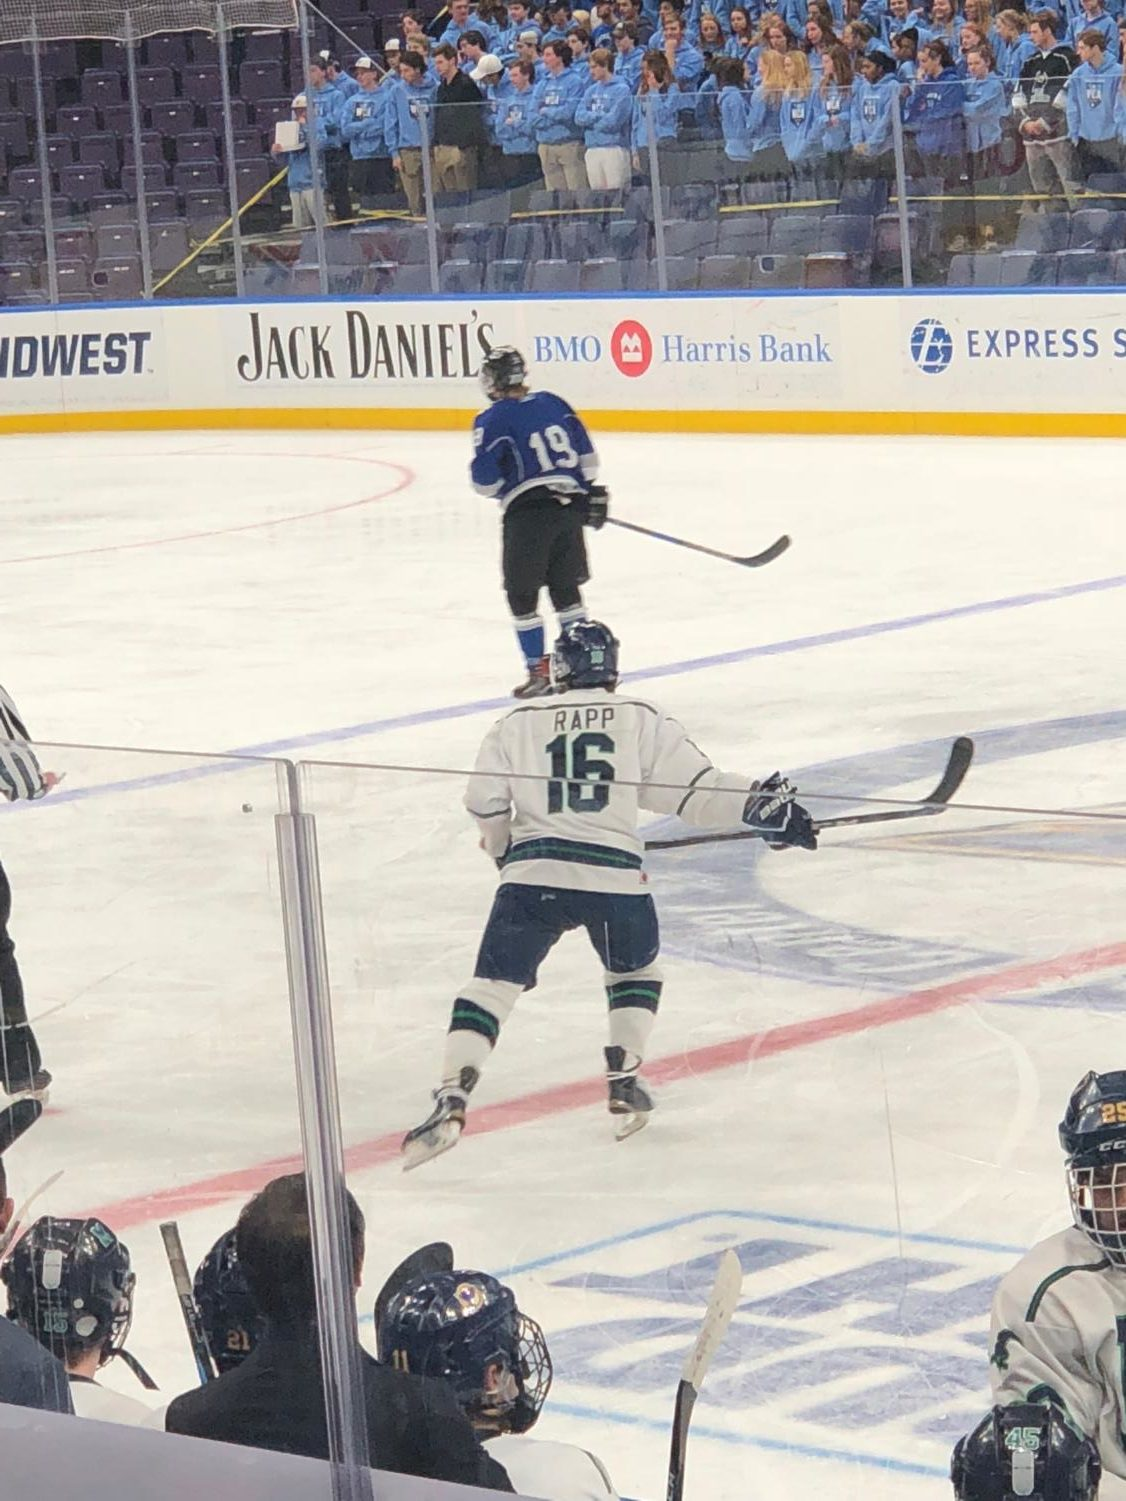 J. Rapp #16 skates down the Scottrade Center ice. Marquette Hockey lost the game 2-4 against Westminster.